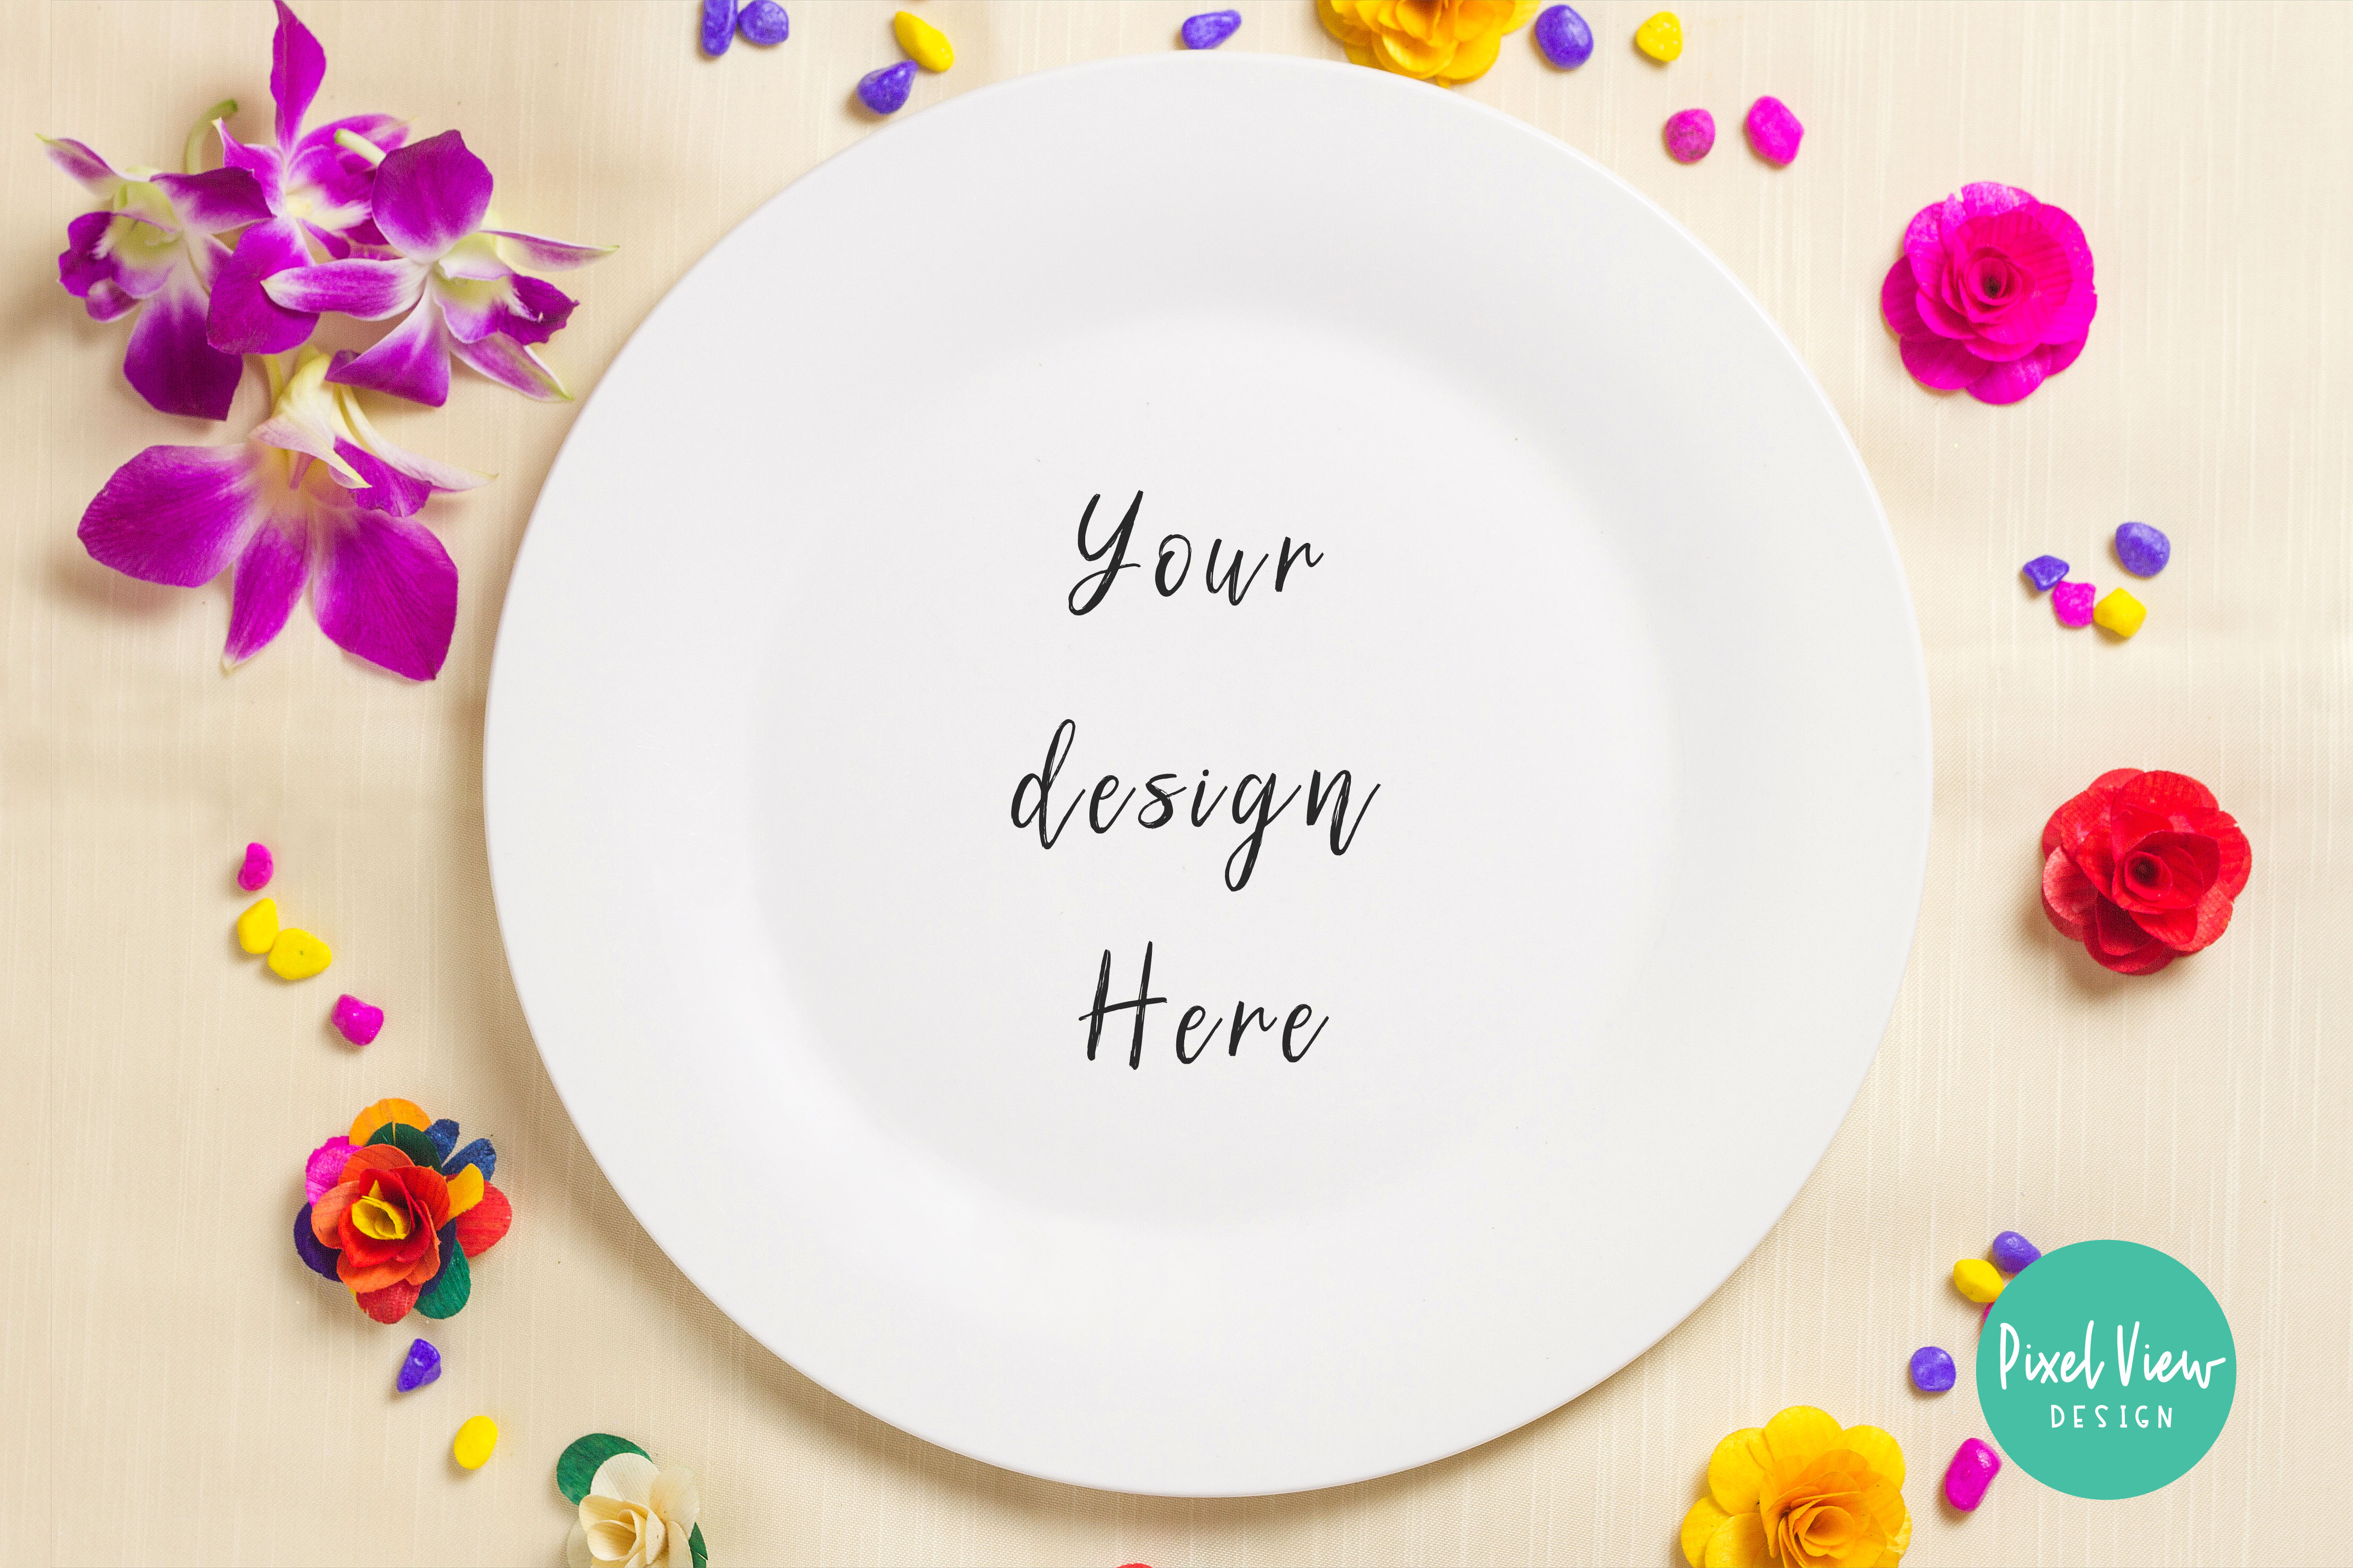 Download Free White Plate Mockup Graphic By Pixel View Design Creative Fabrica for Cricut Explore, Silhouette and other cutting machines.